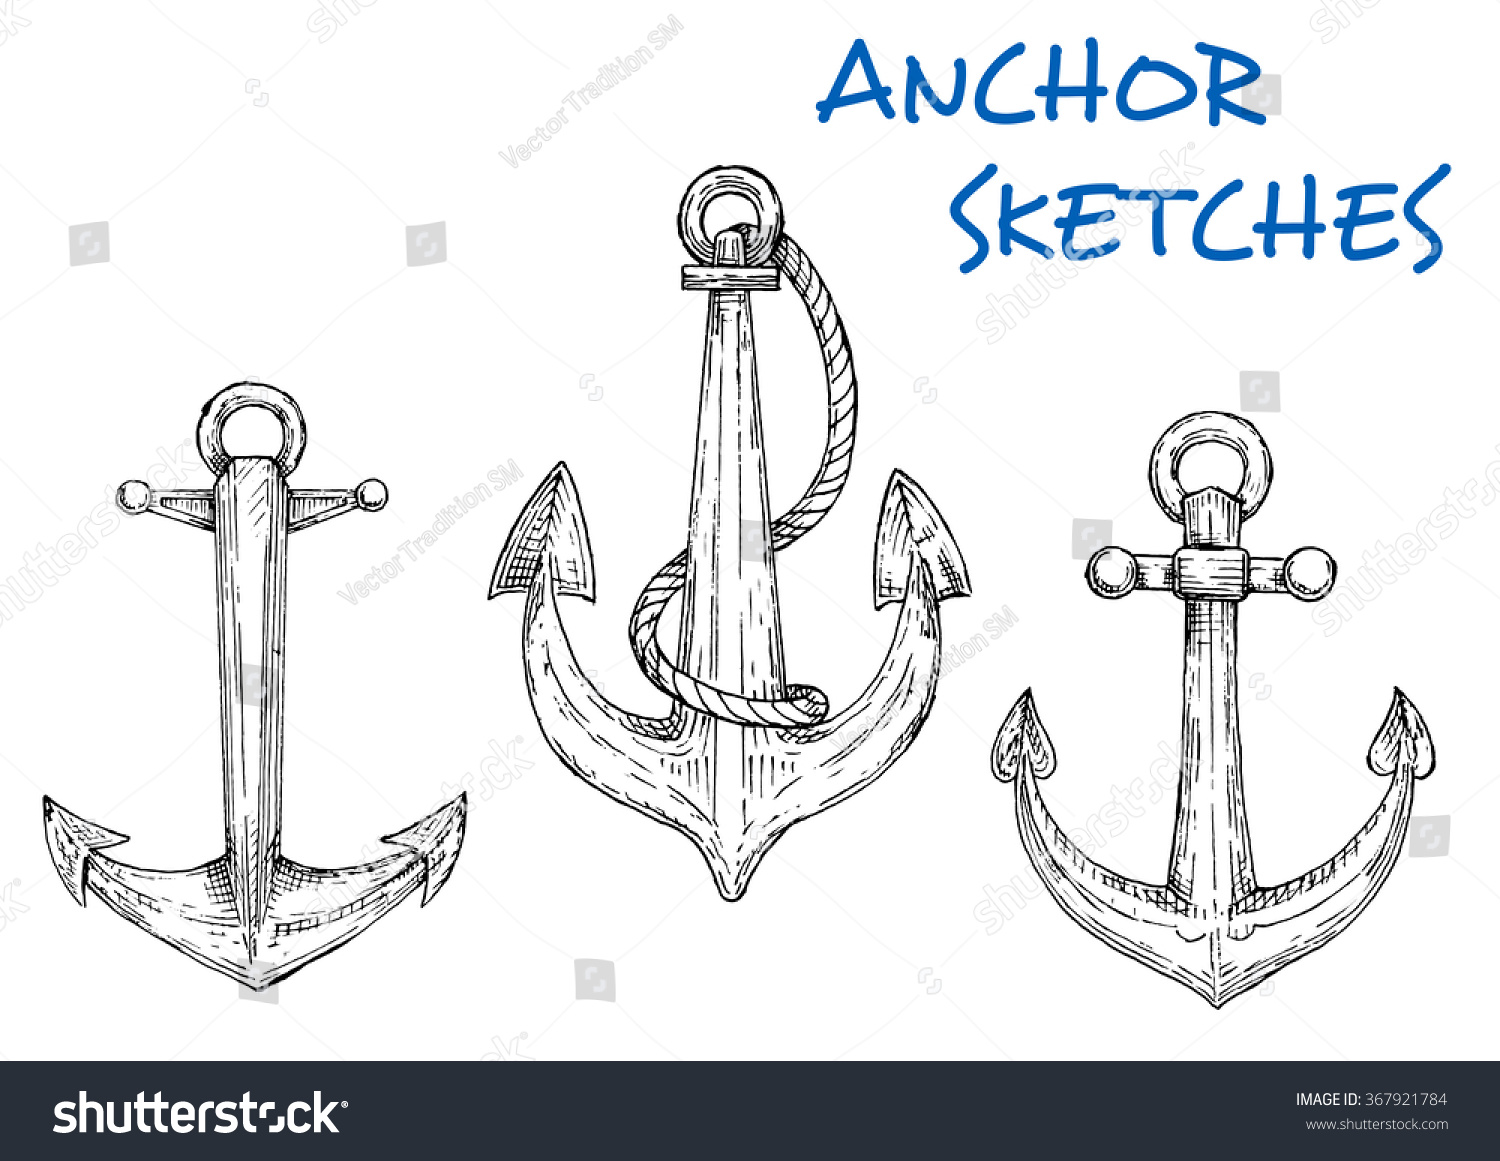 Nautical sketch old ship anchors icons stock vector 367921784 nautical sketch of old ship anchors icons with rings and attached rope navy emblem buycottarizona